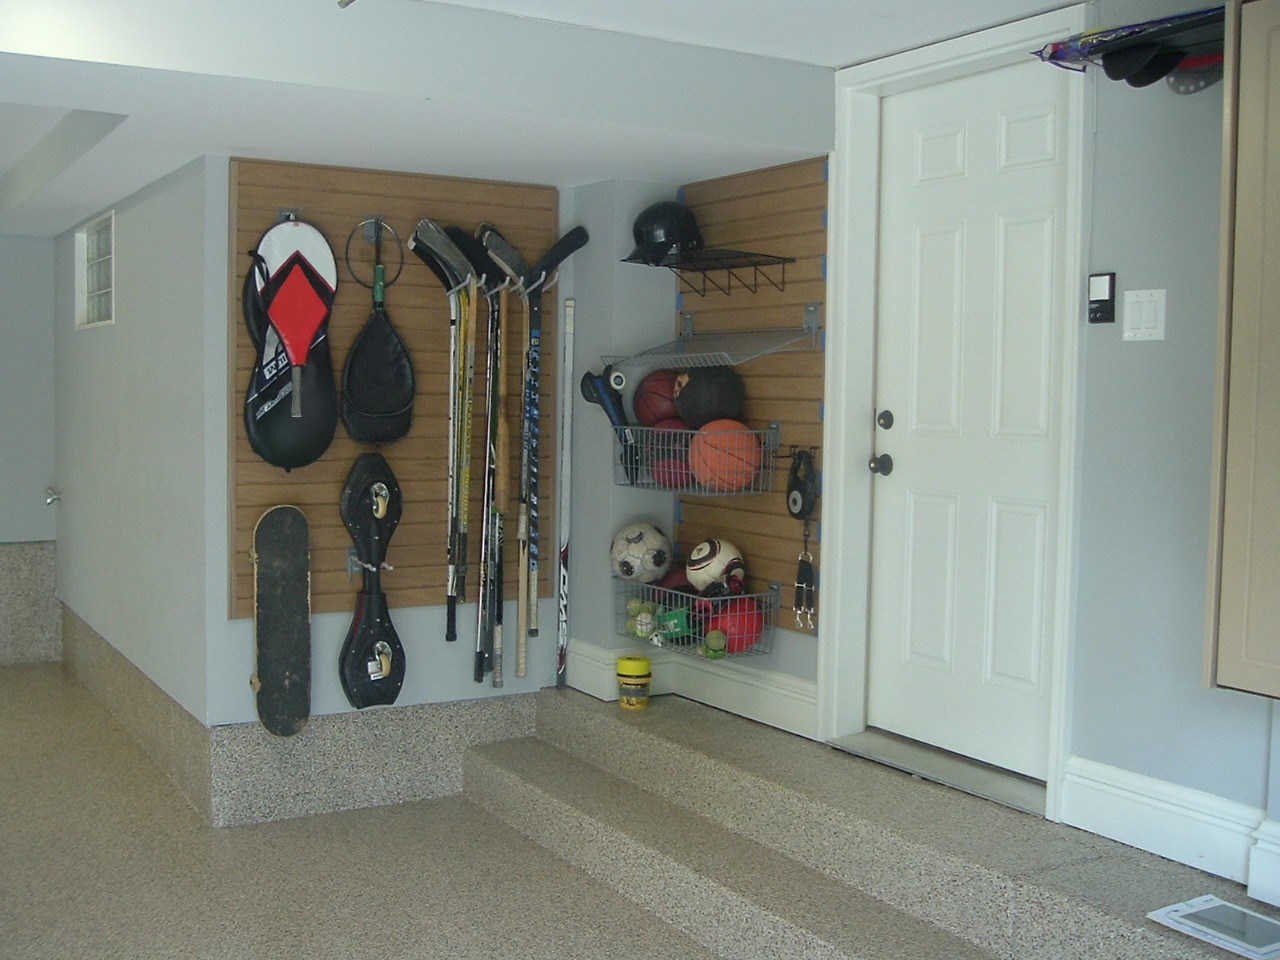 Use SlatWall Panels & SlatWall Accessories to Organize kids' toys and sports equipment